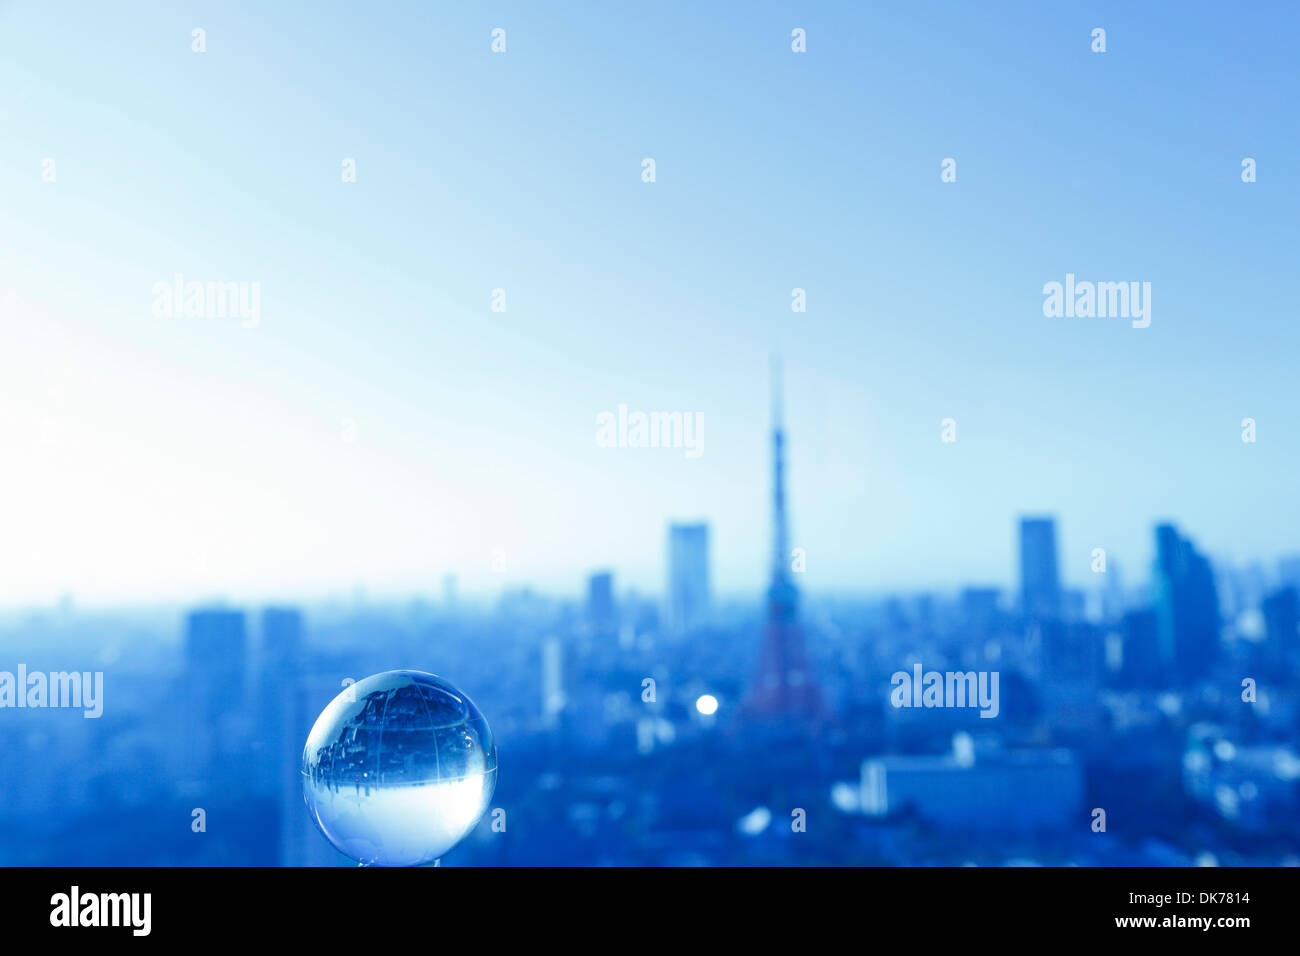 Glass earth globe - Stock Image